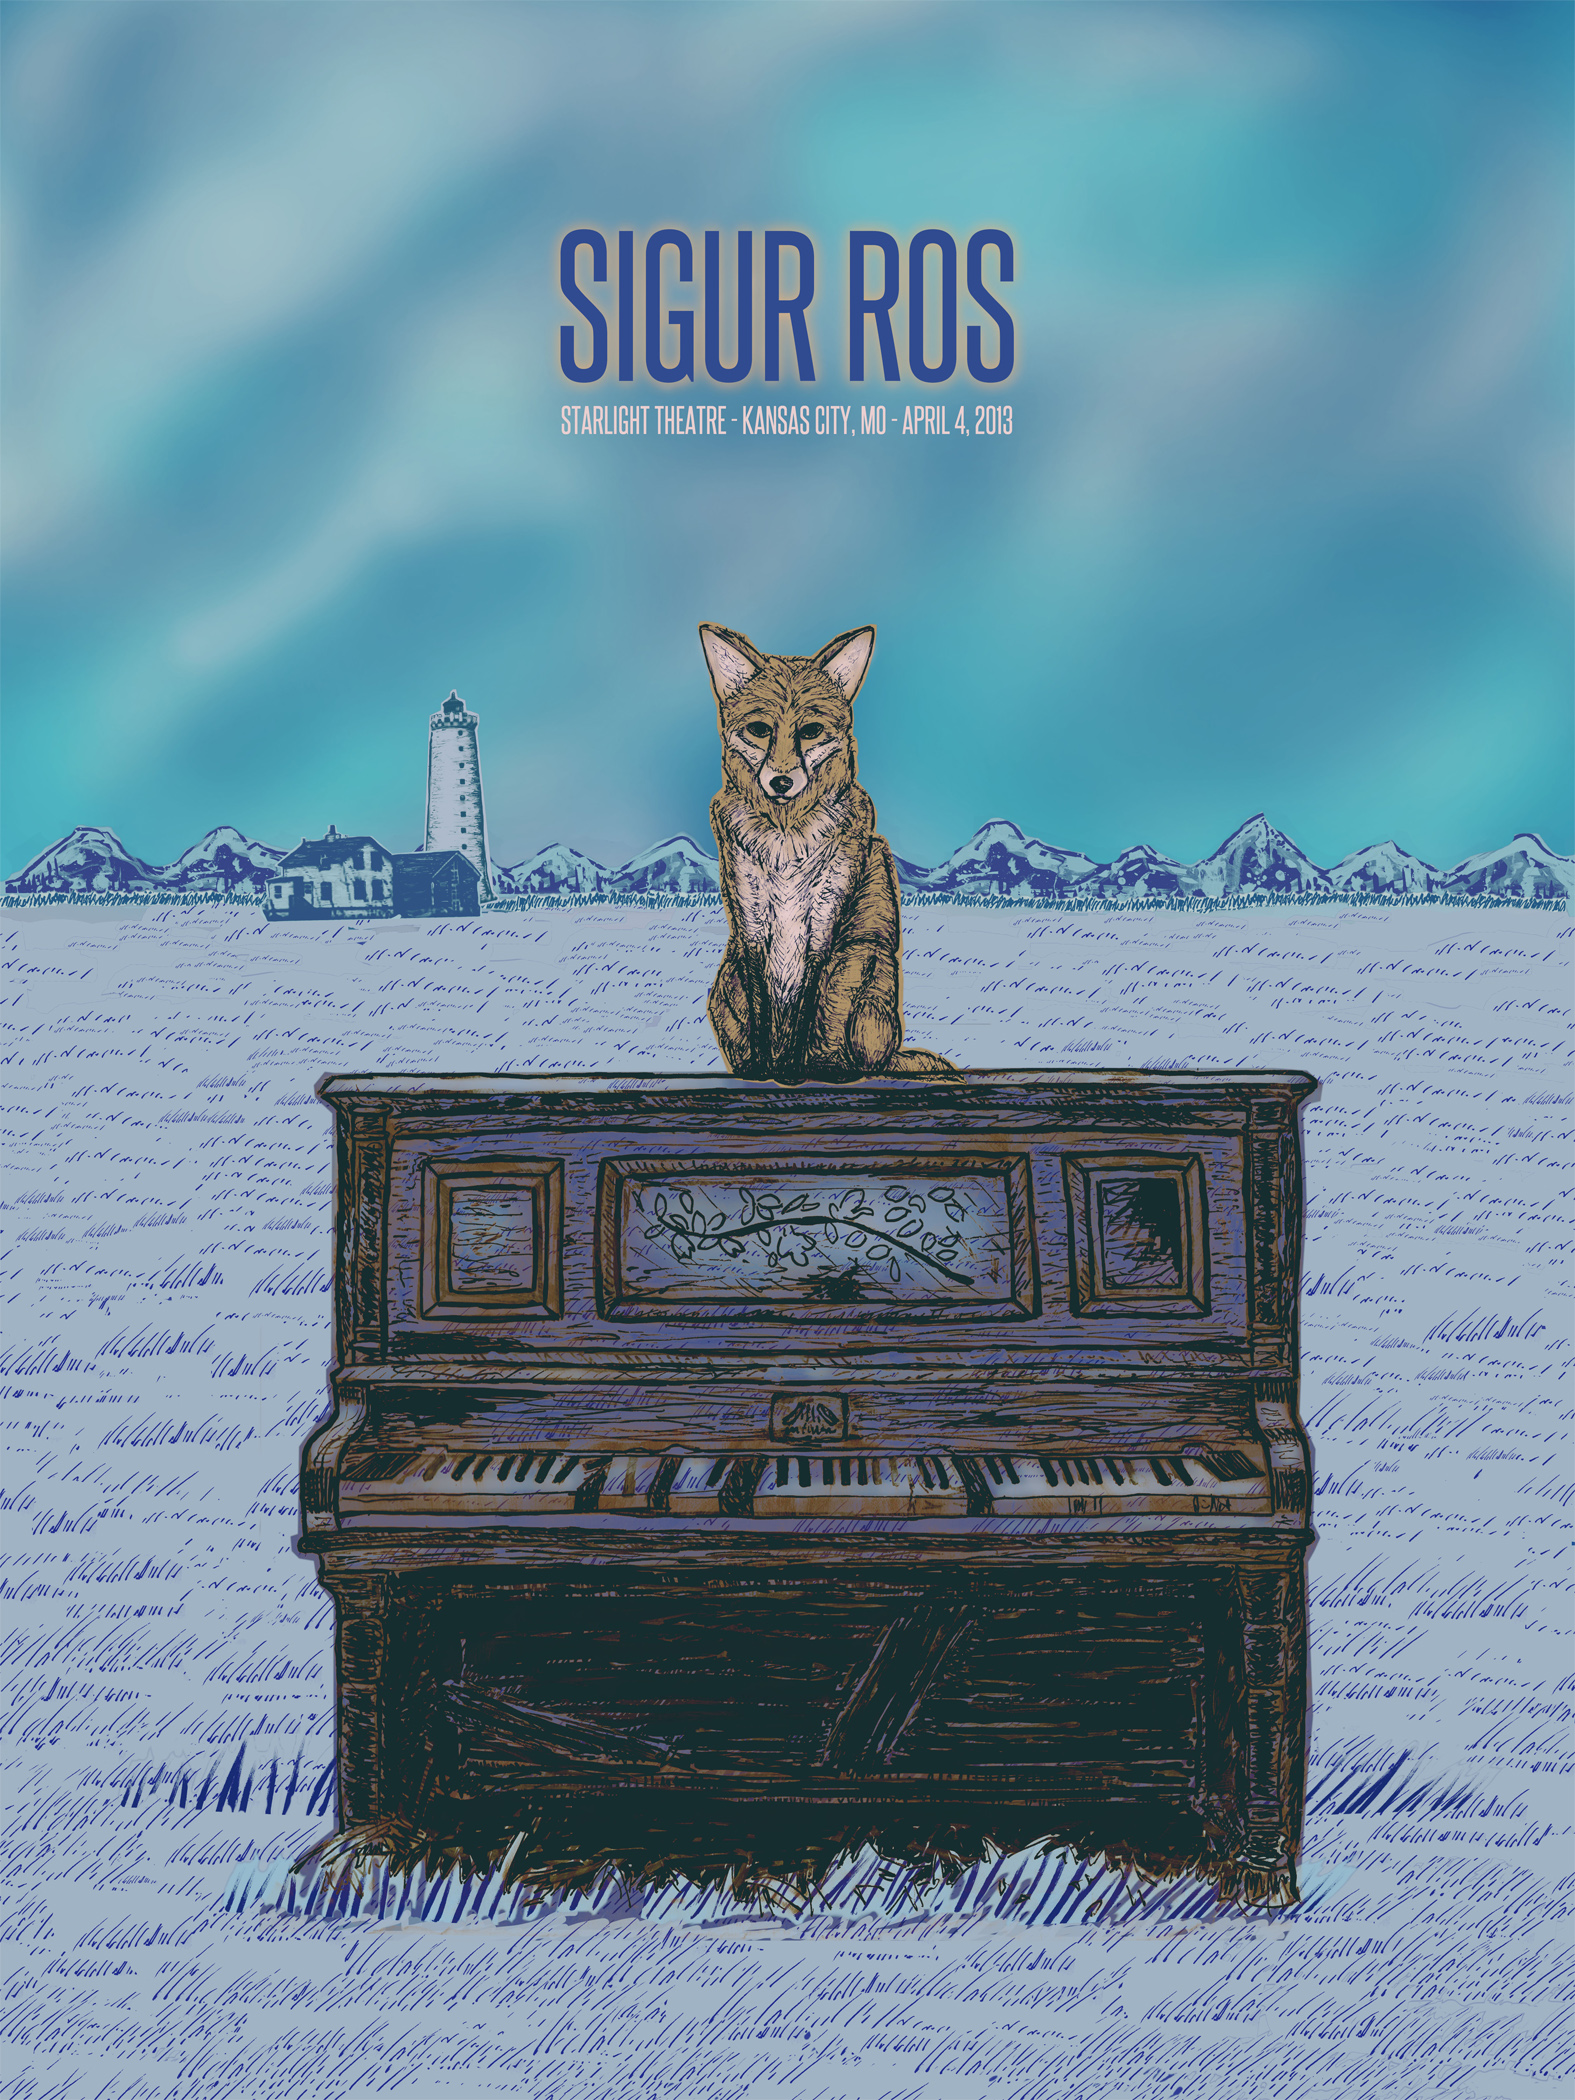 Sigur Ros Gig Poster  - image 12 - student project